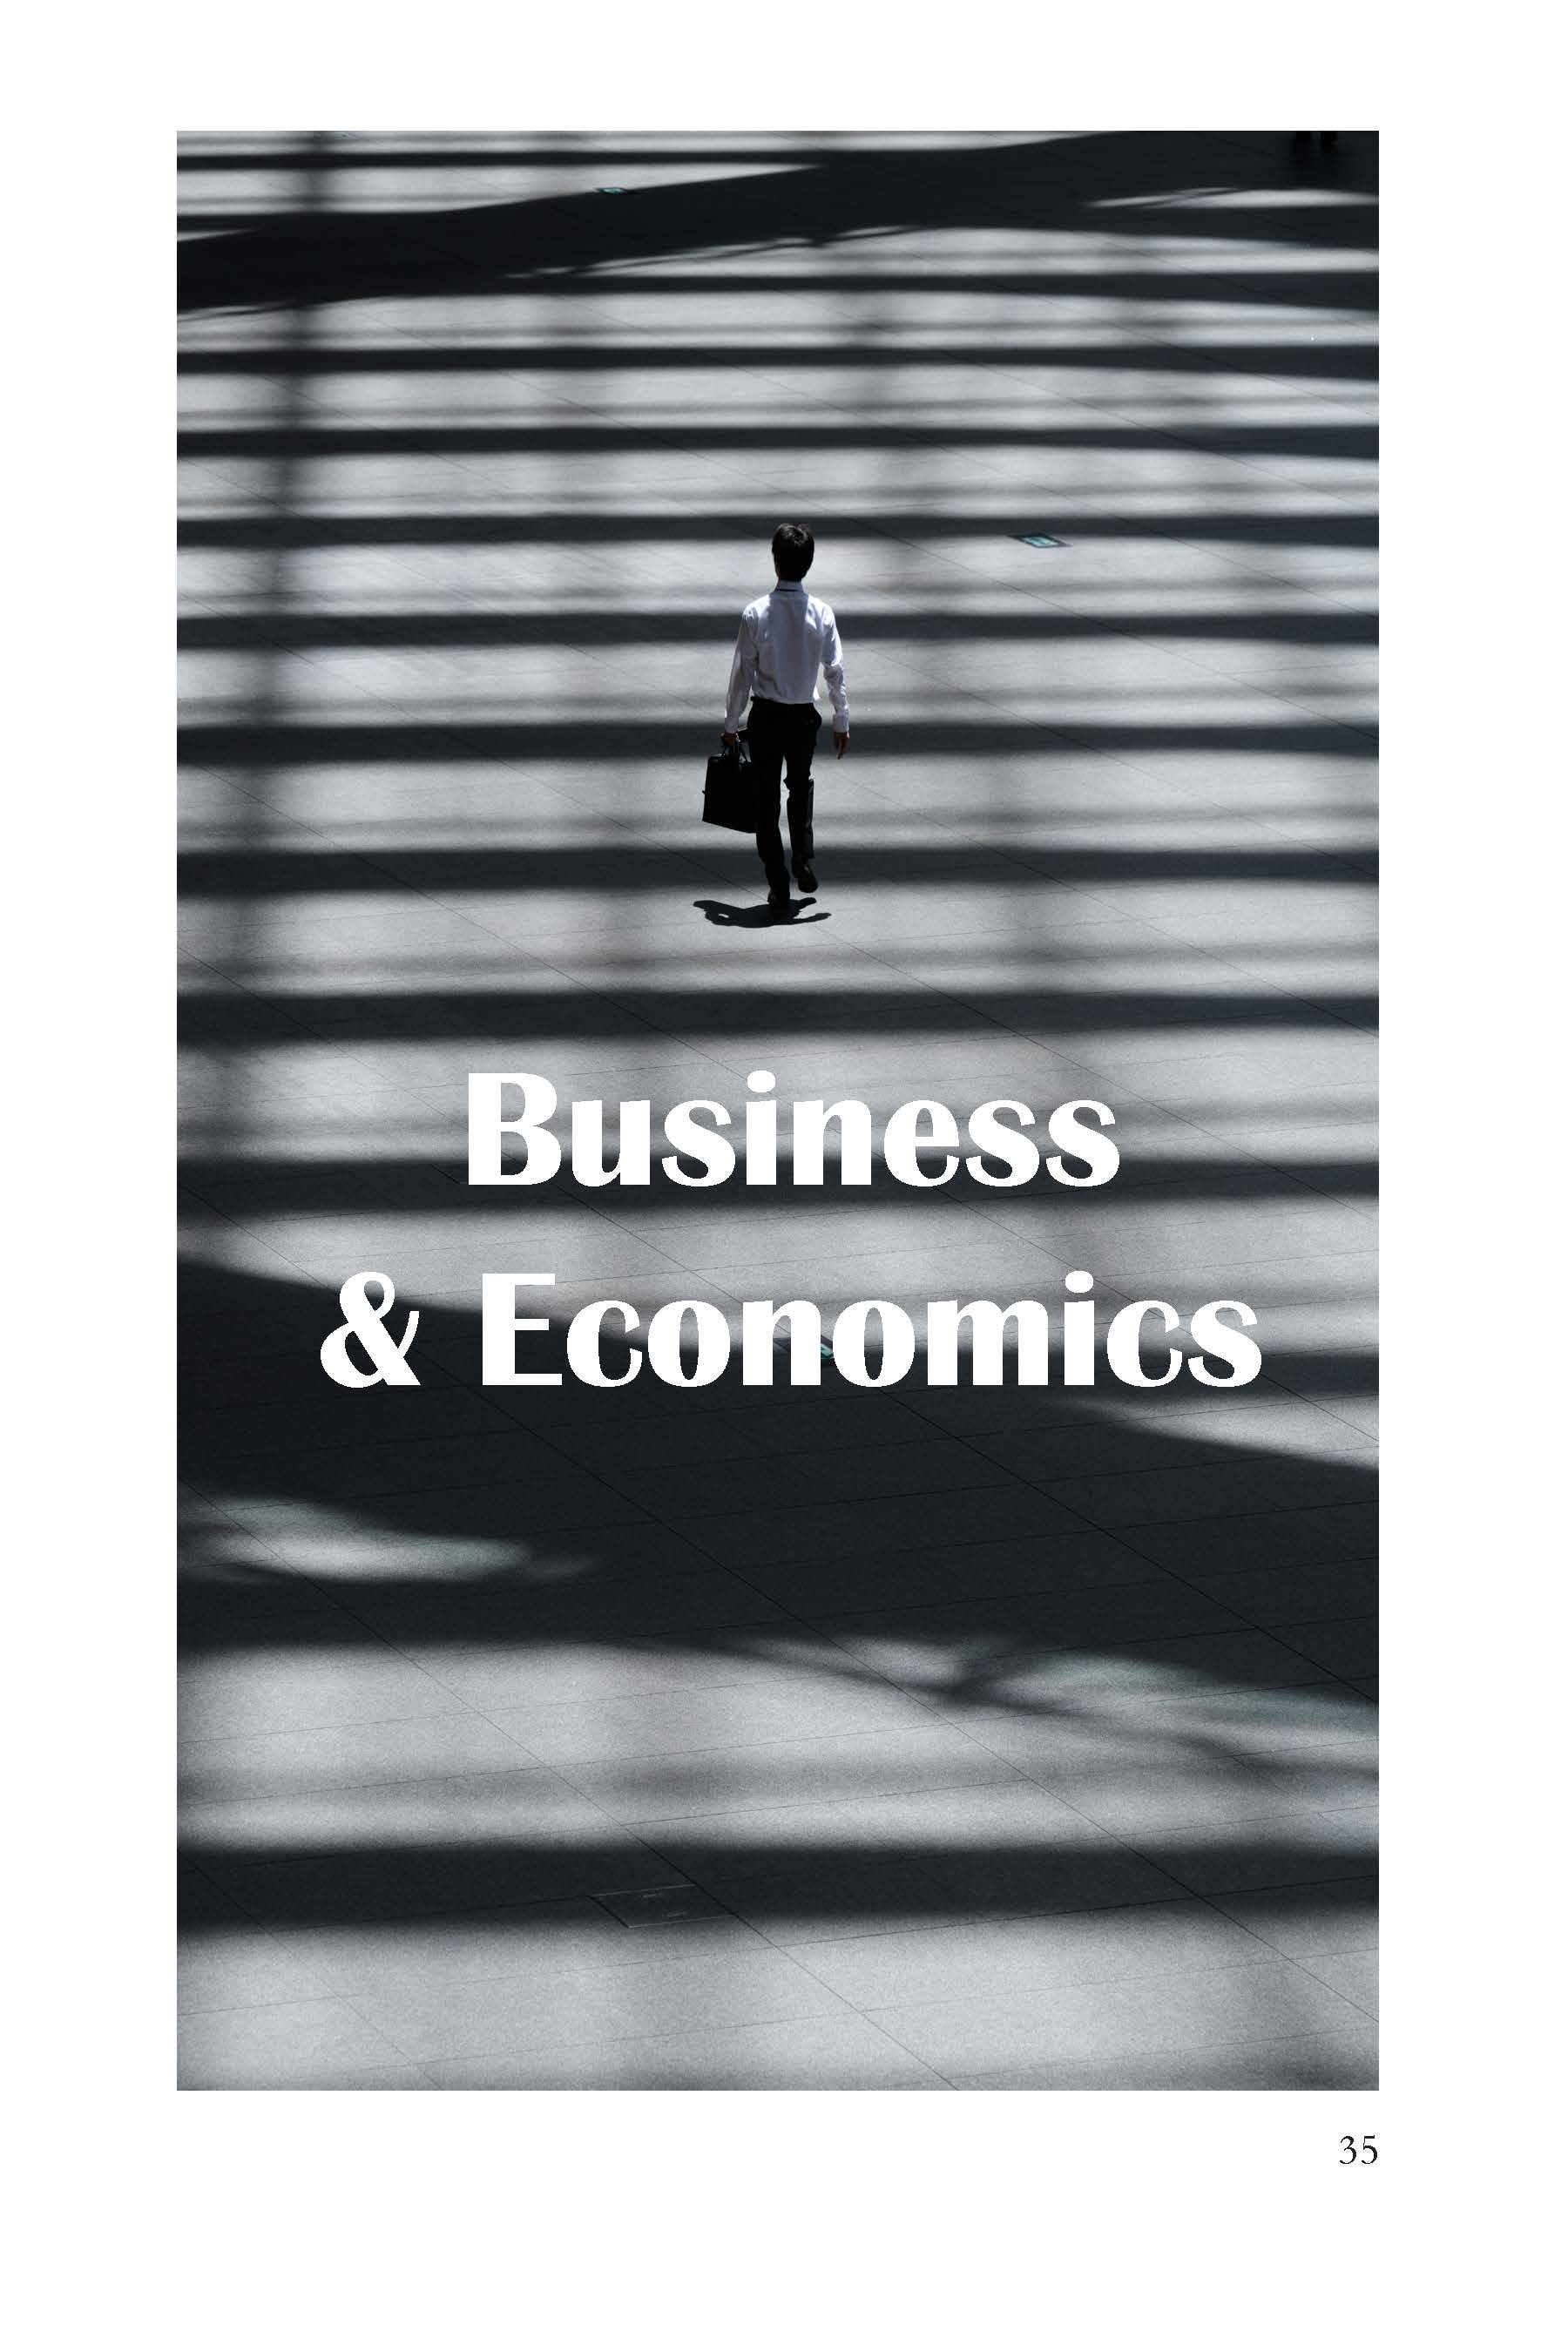 Image is abstract, lines of shadow and light background, gray tones, lone person walking away, Business & Economics section page